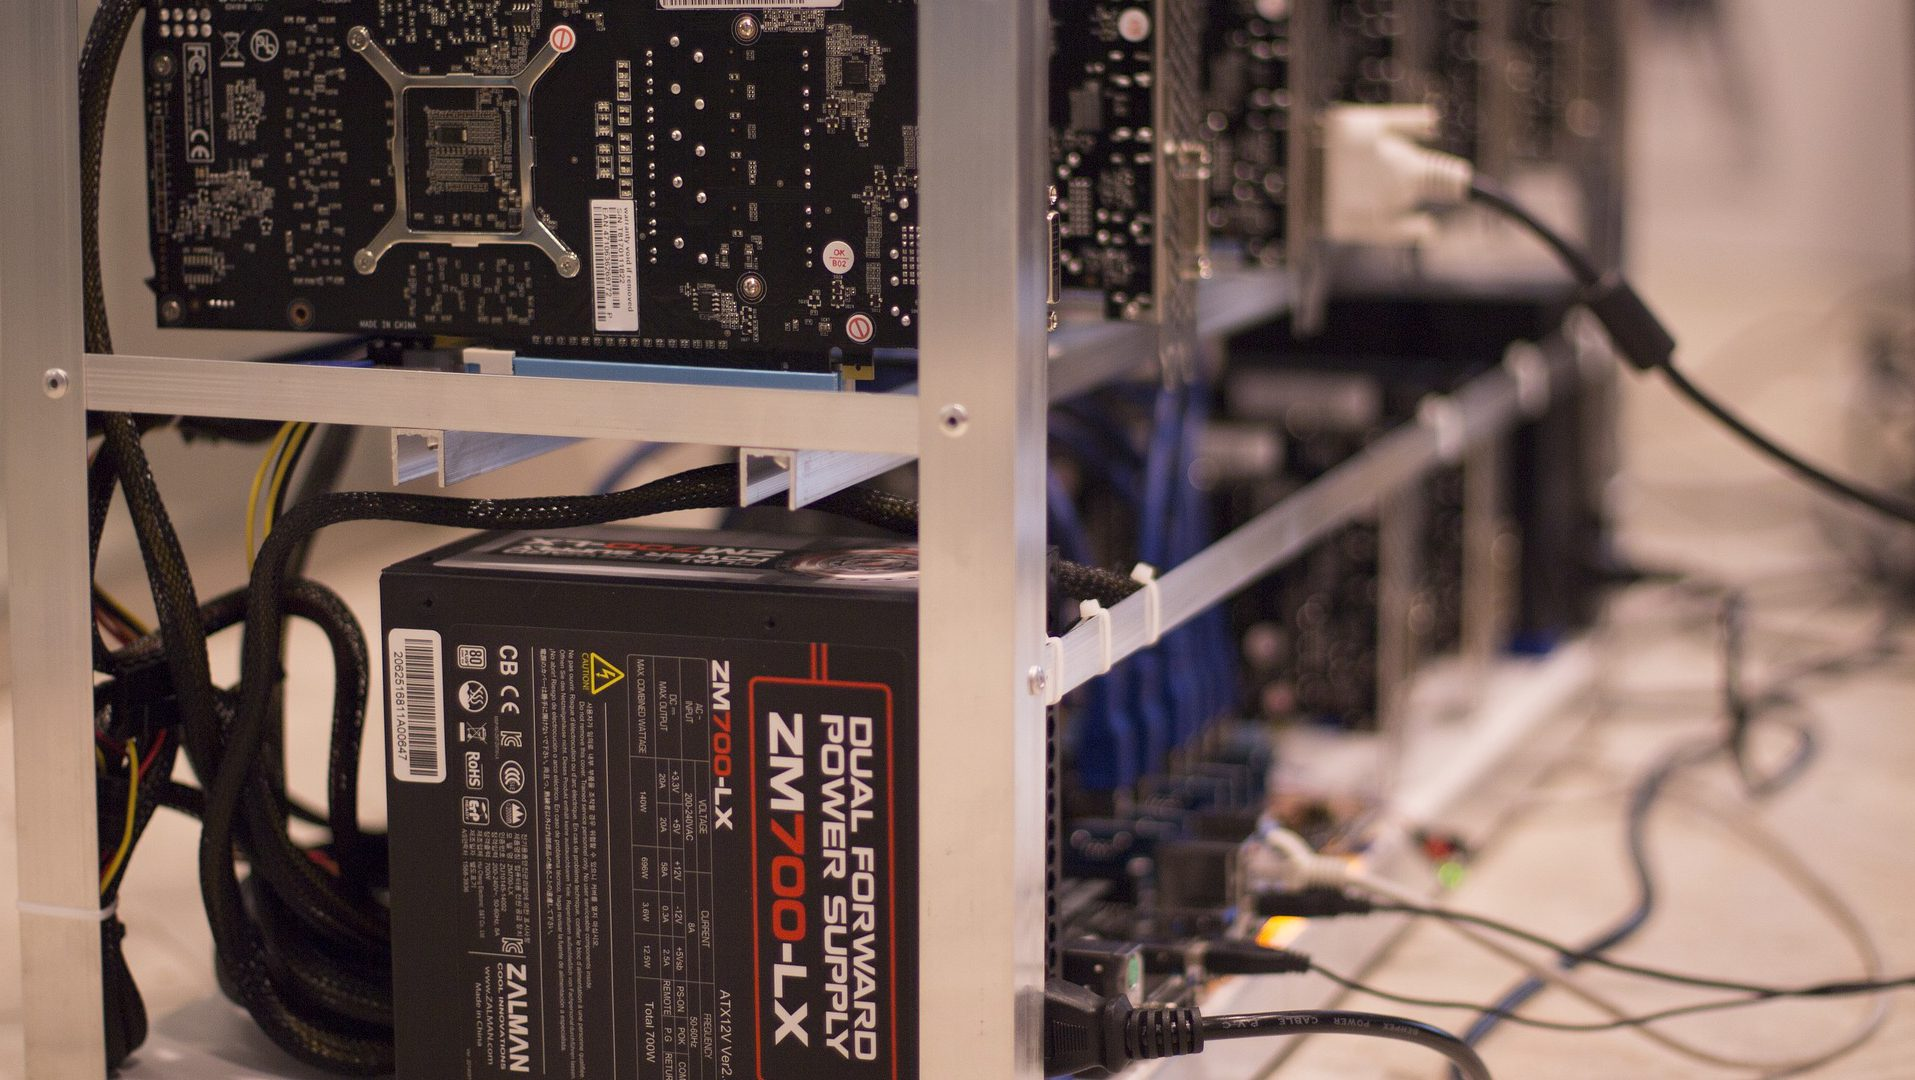 Students Are Mining Cryptocurrency From Their Dorm Rooms On College